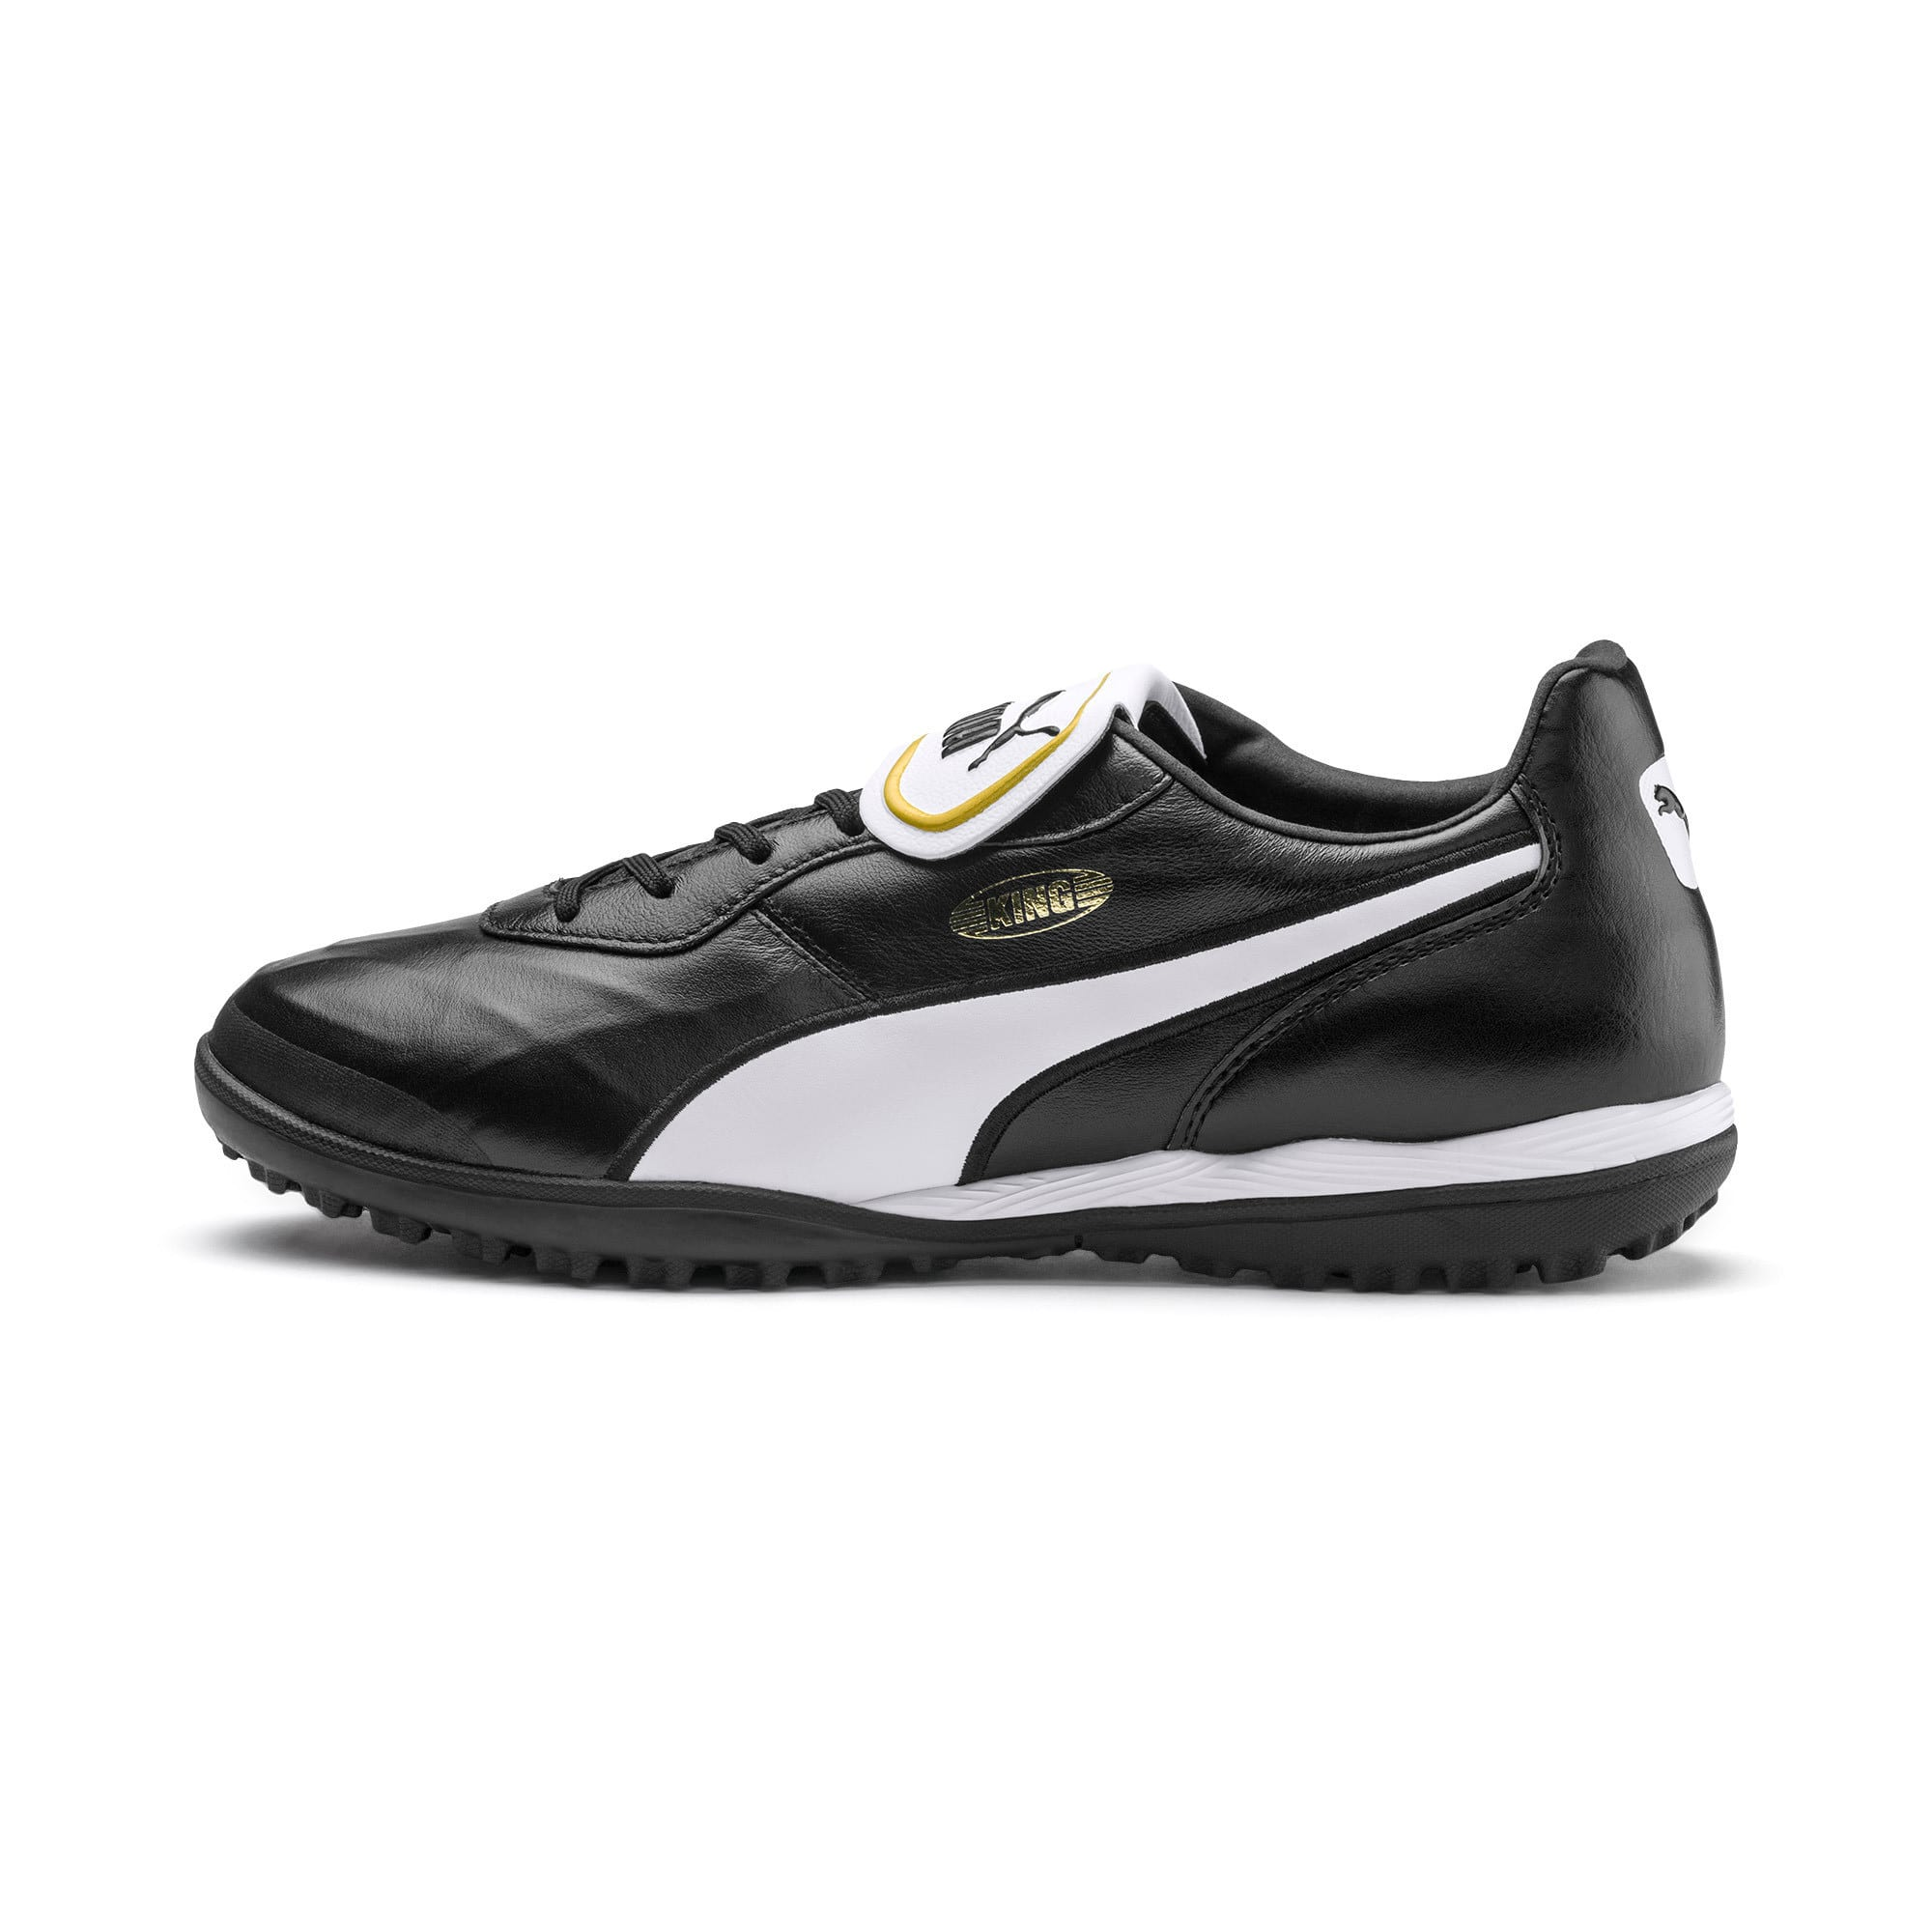 Thumbnail 1 of King Top TT Soccer Shoes, Puma Black-Puma White, medium